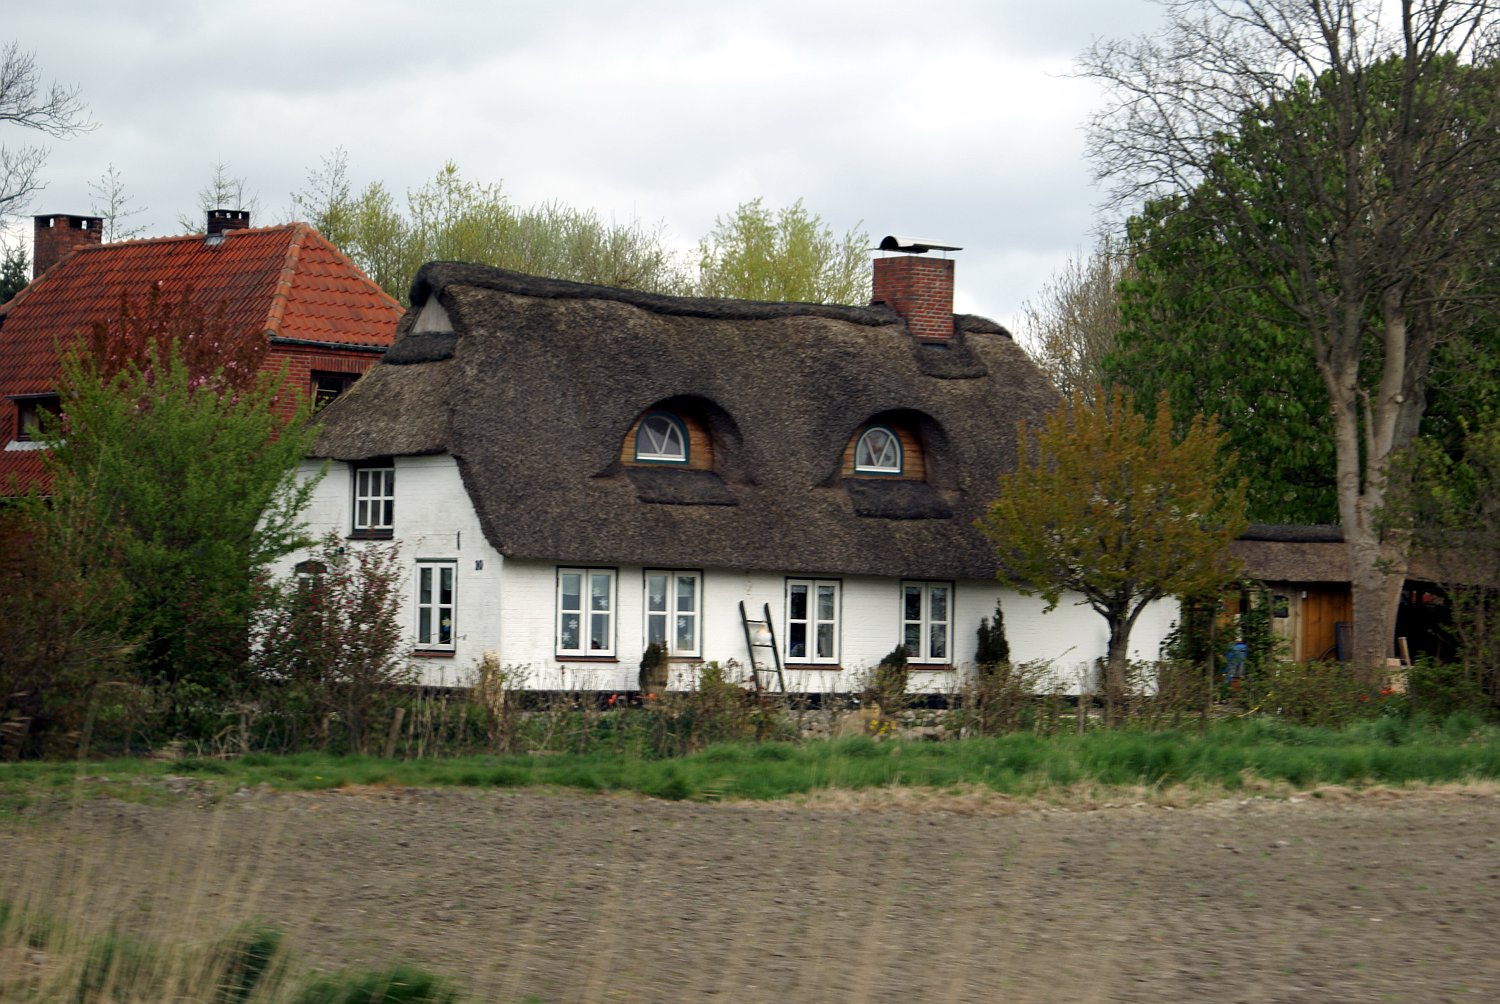 Elegant File:A White Painted House With A Thatched Roof